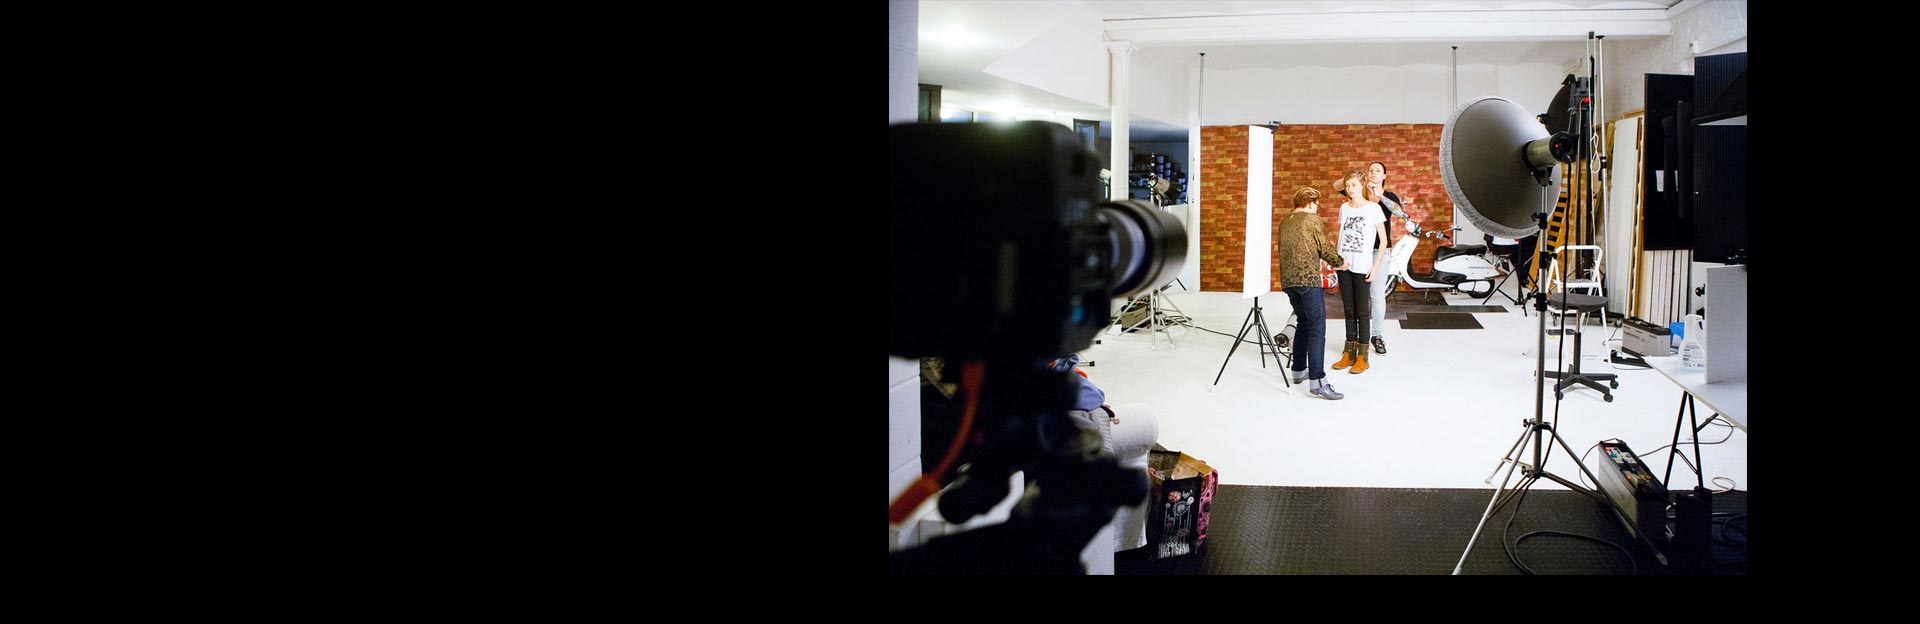 Studio photo Strasbourg Bas-Rhin 67 - Shooting mode